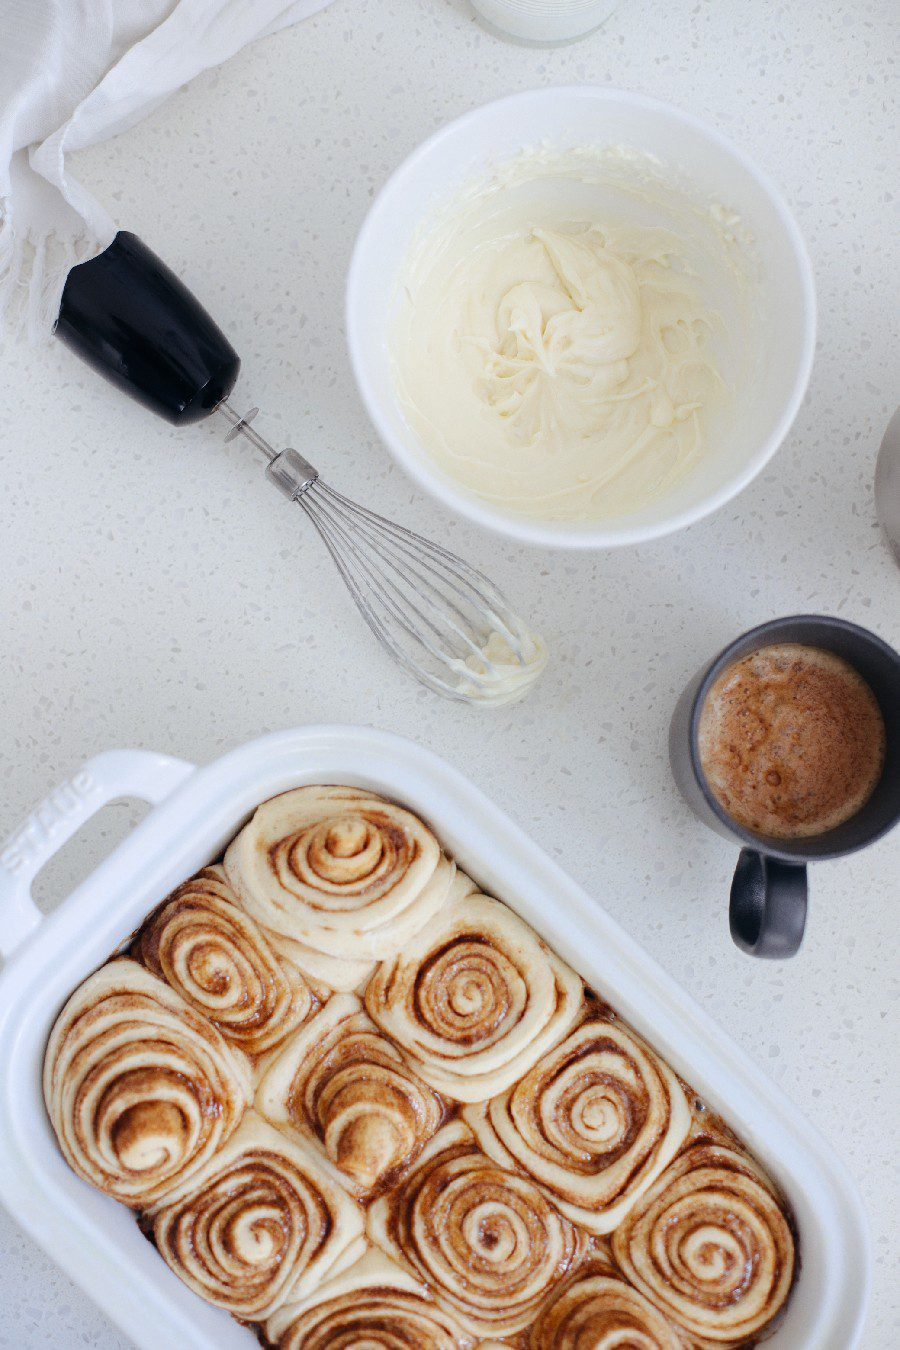 Easy bread machine cinnamon rolls dough. The best gooey sticky buns and clone of a Cinnabon roll icing! NO waiting overnight. Click for the recipe and how to video for fluffy cinnamon rolls homemade with a bread maker machine! Use all purpose flour or make them gluten free. Recipe from top Florida lifestyle blogger Tabitha Blue of Fresh Mommy Blog. | Bread Machine Cinnamon Roll Recipe by popular Florida lifestyle blog, Fresh Mommy Blog: image of cinnamon rolls in a white ceramic baking dish next to a bowl of cream cheese icing.